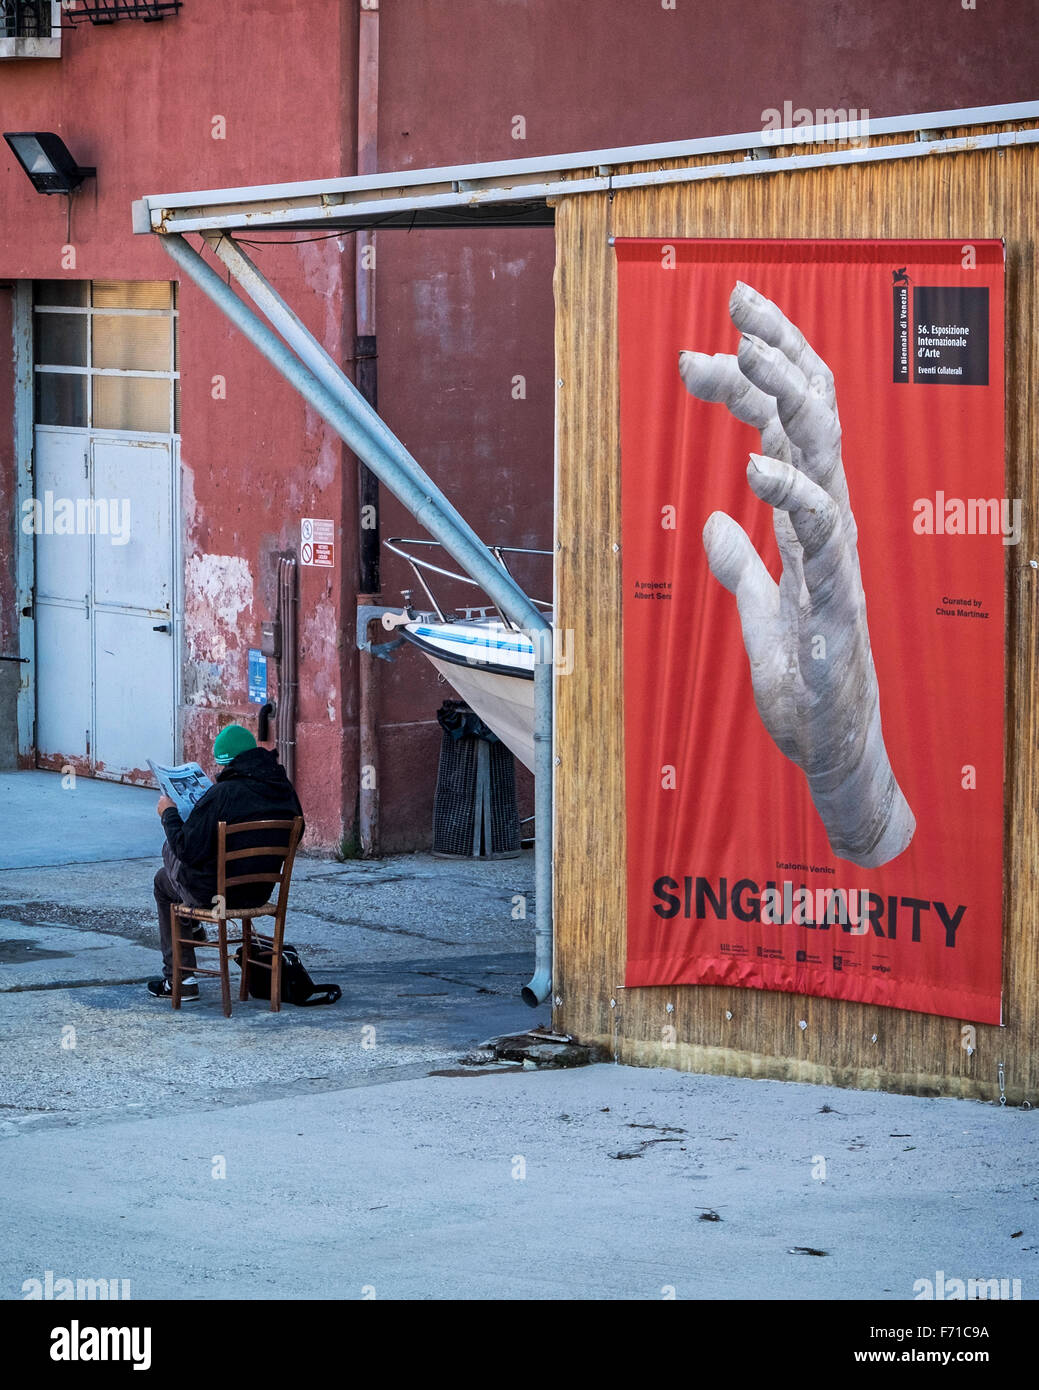 Venice, Italy - Poster for Catalonian artist, Albert Serra's 'Singularity' exhibition at the 2015 Venice - Stock Image